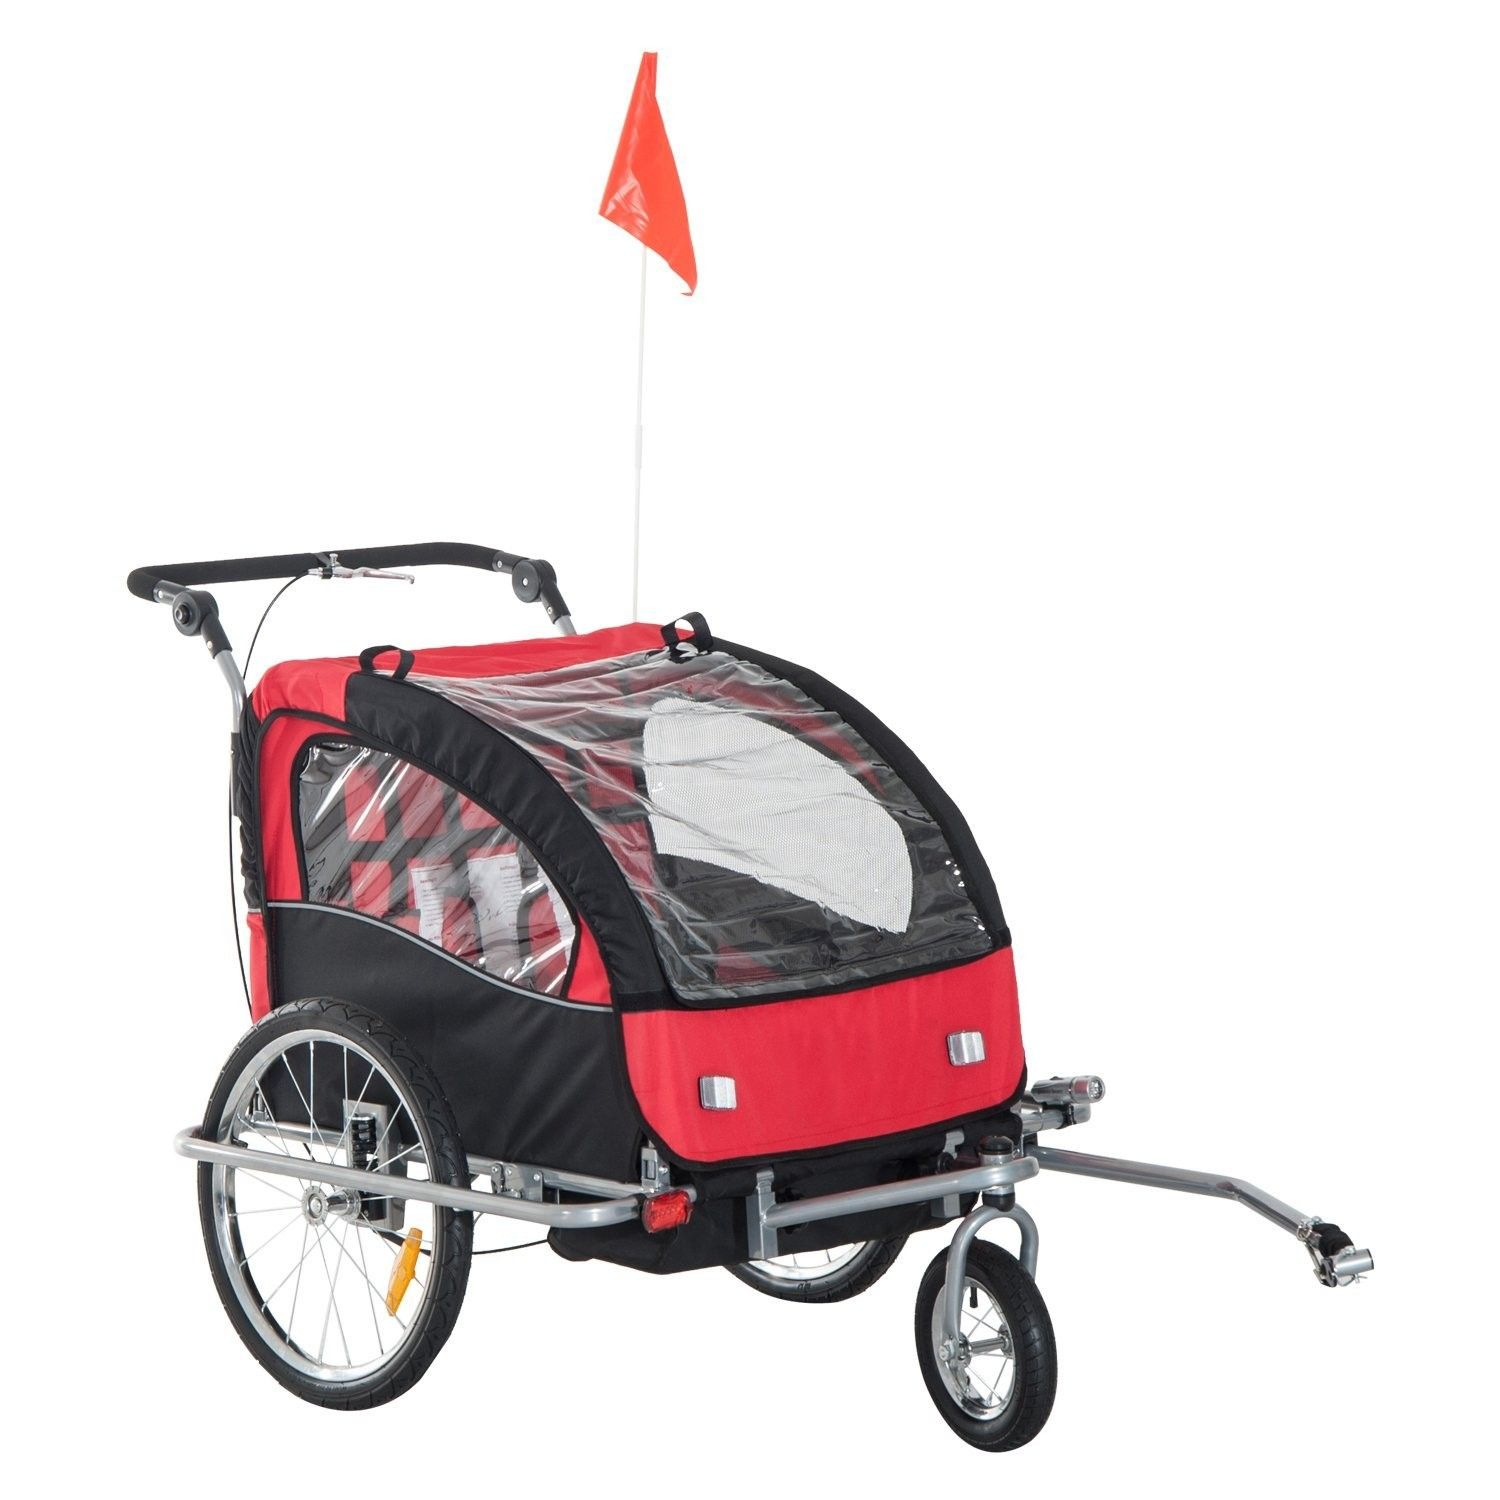 2 in 1 Child Bike Trailer,2SeaterBlack/Red (With